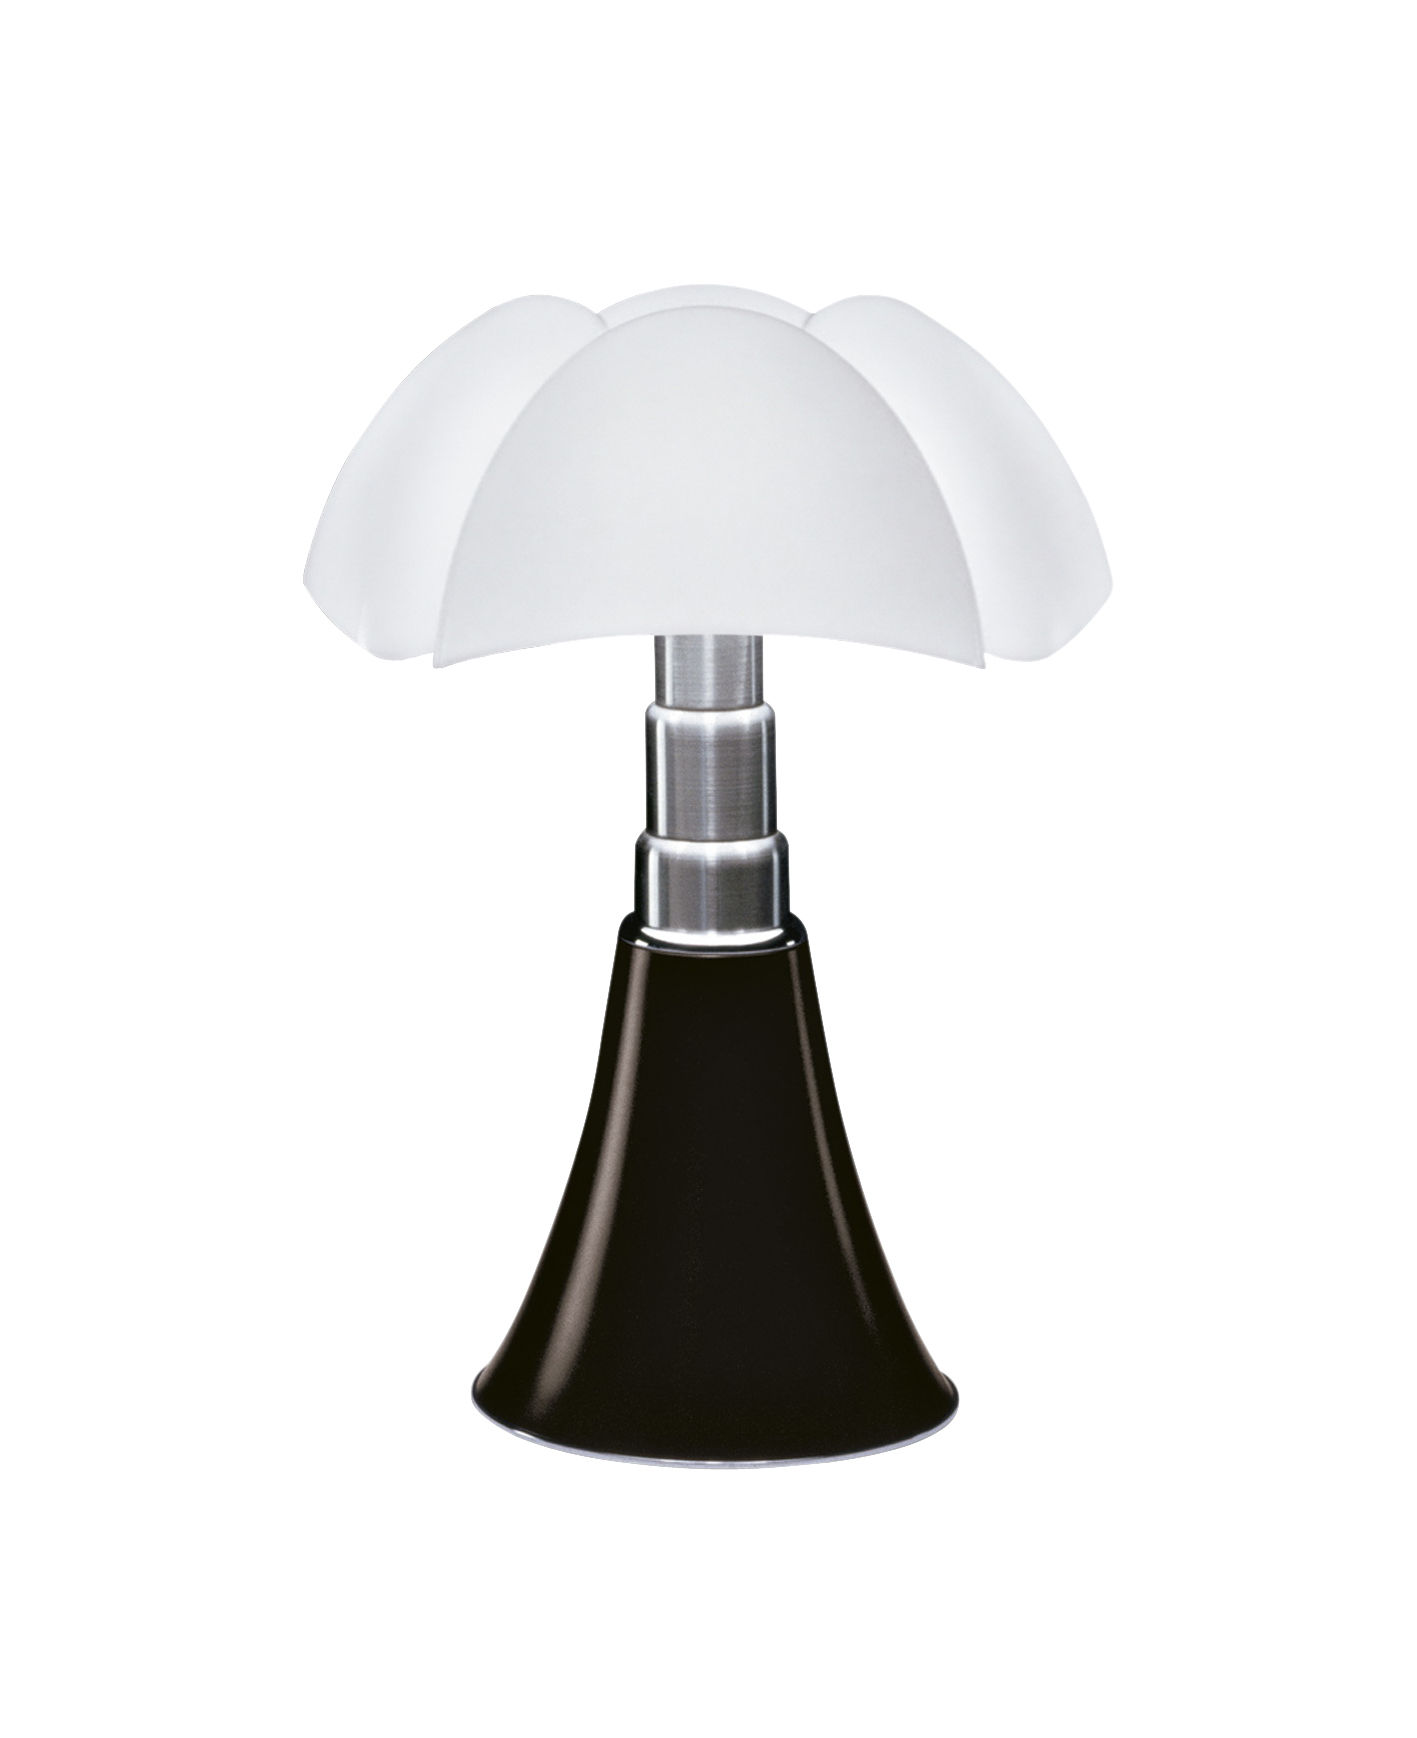 Lampe de table minipipistrello led h 35 cm marron fonc martinelli luce - Table pour lampe de salon ...